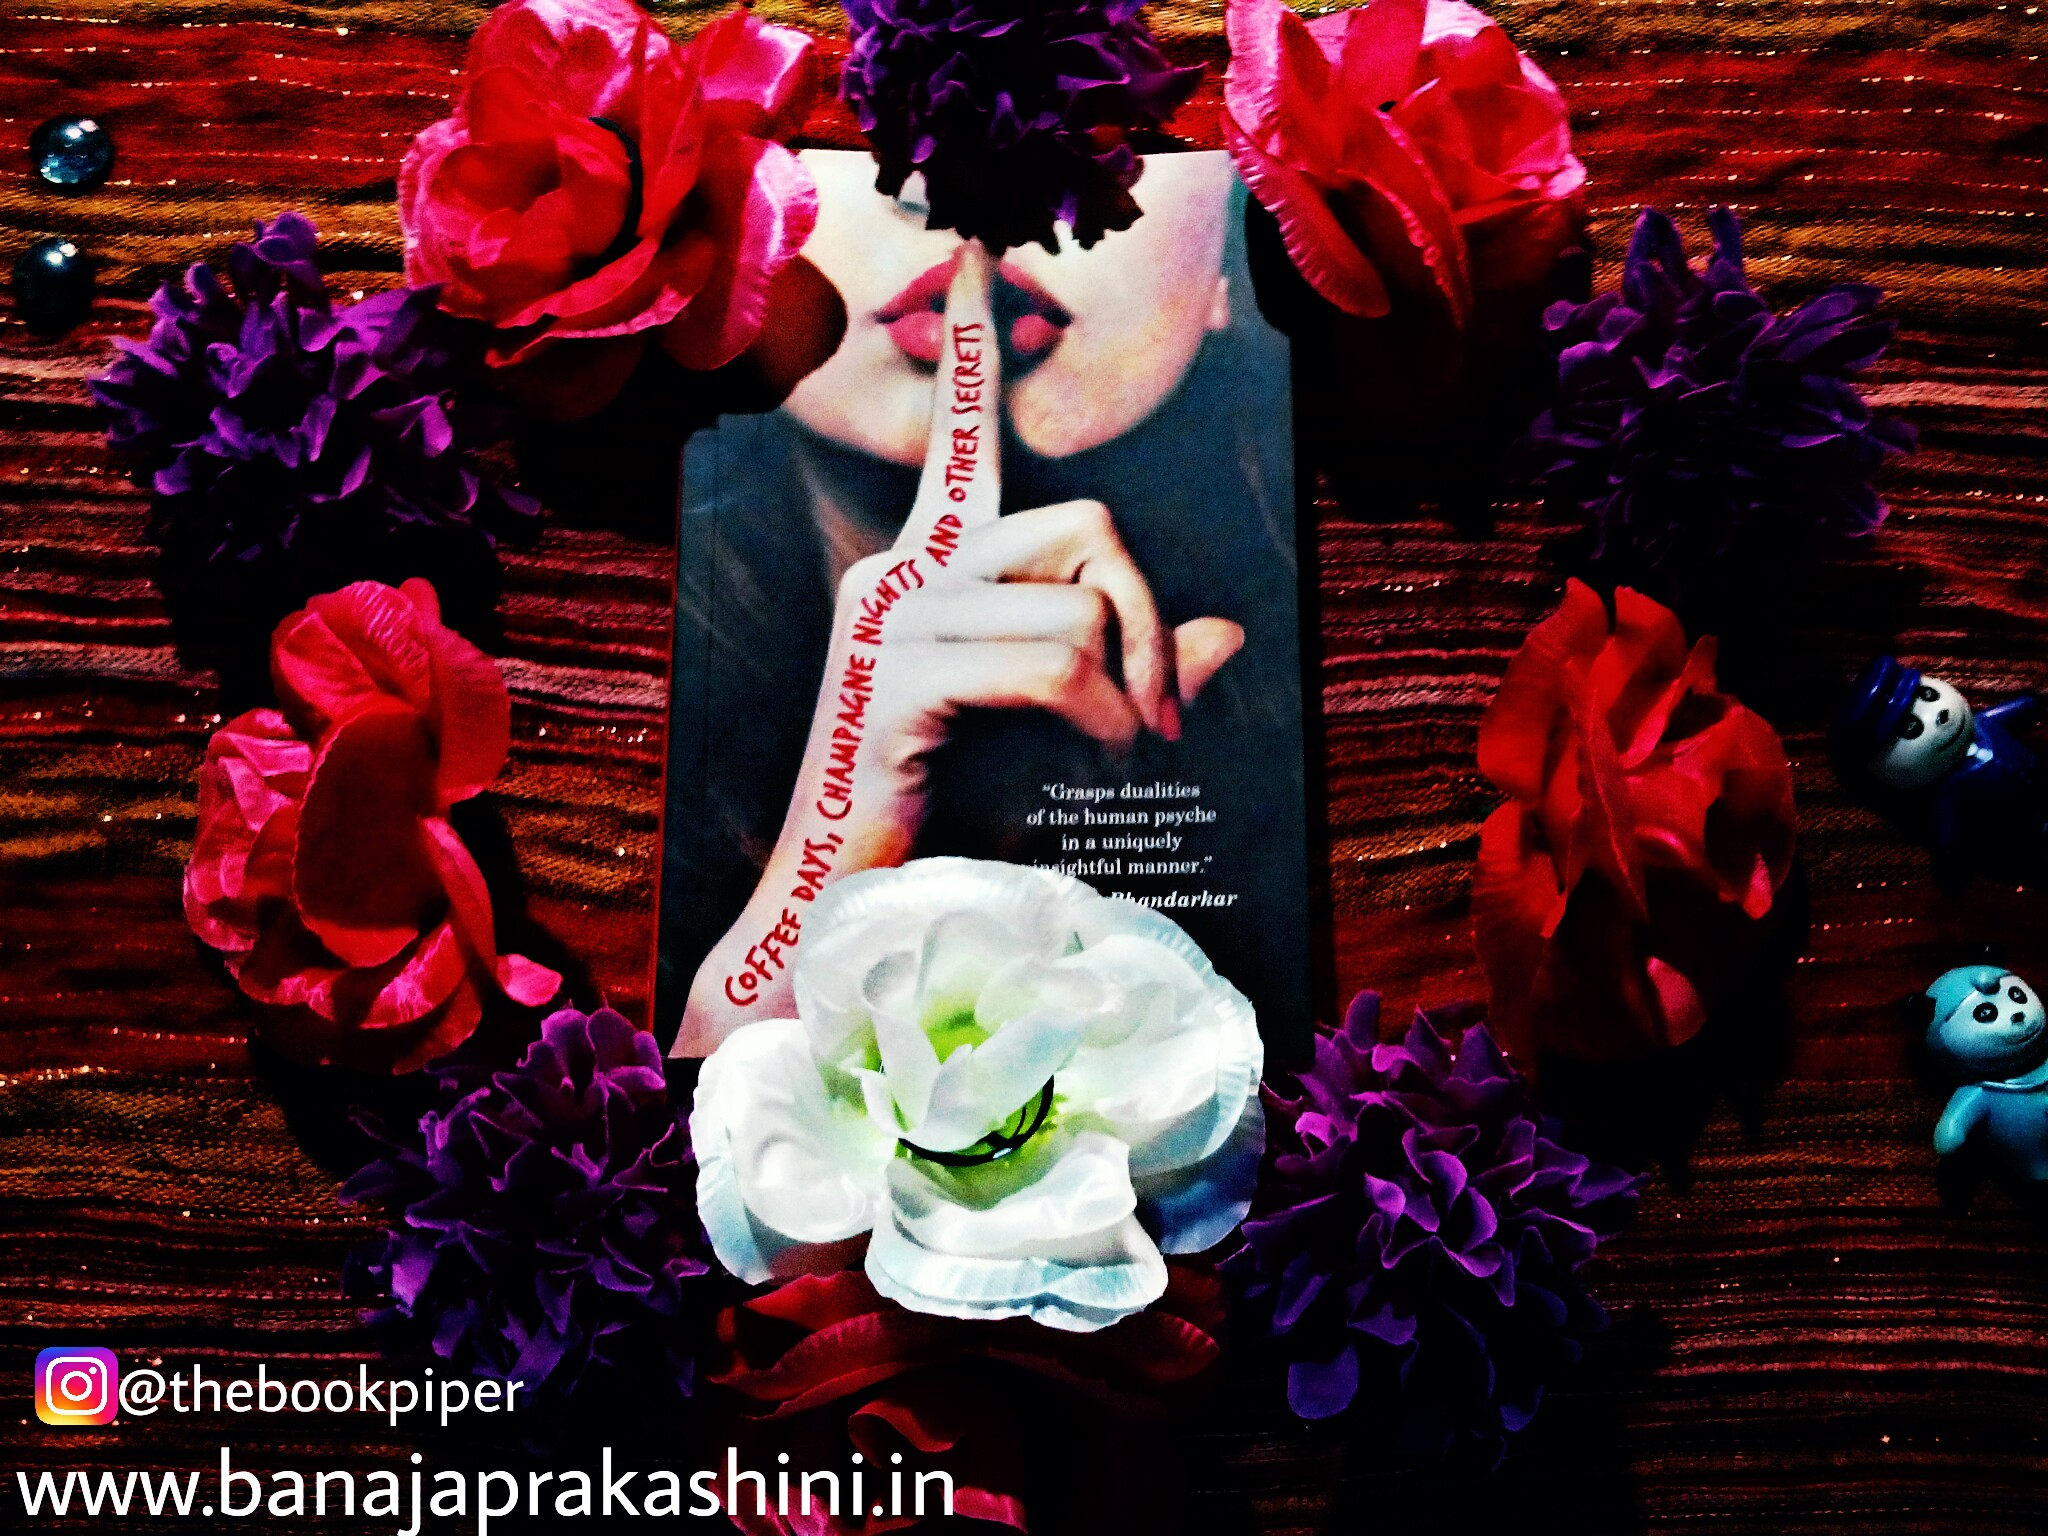 Review Pen: Coffee Days, Champagne Nights and other secrets by Kainaz Jussawalla